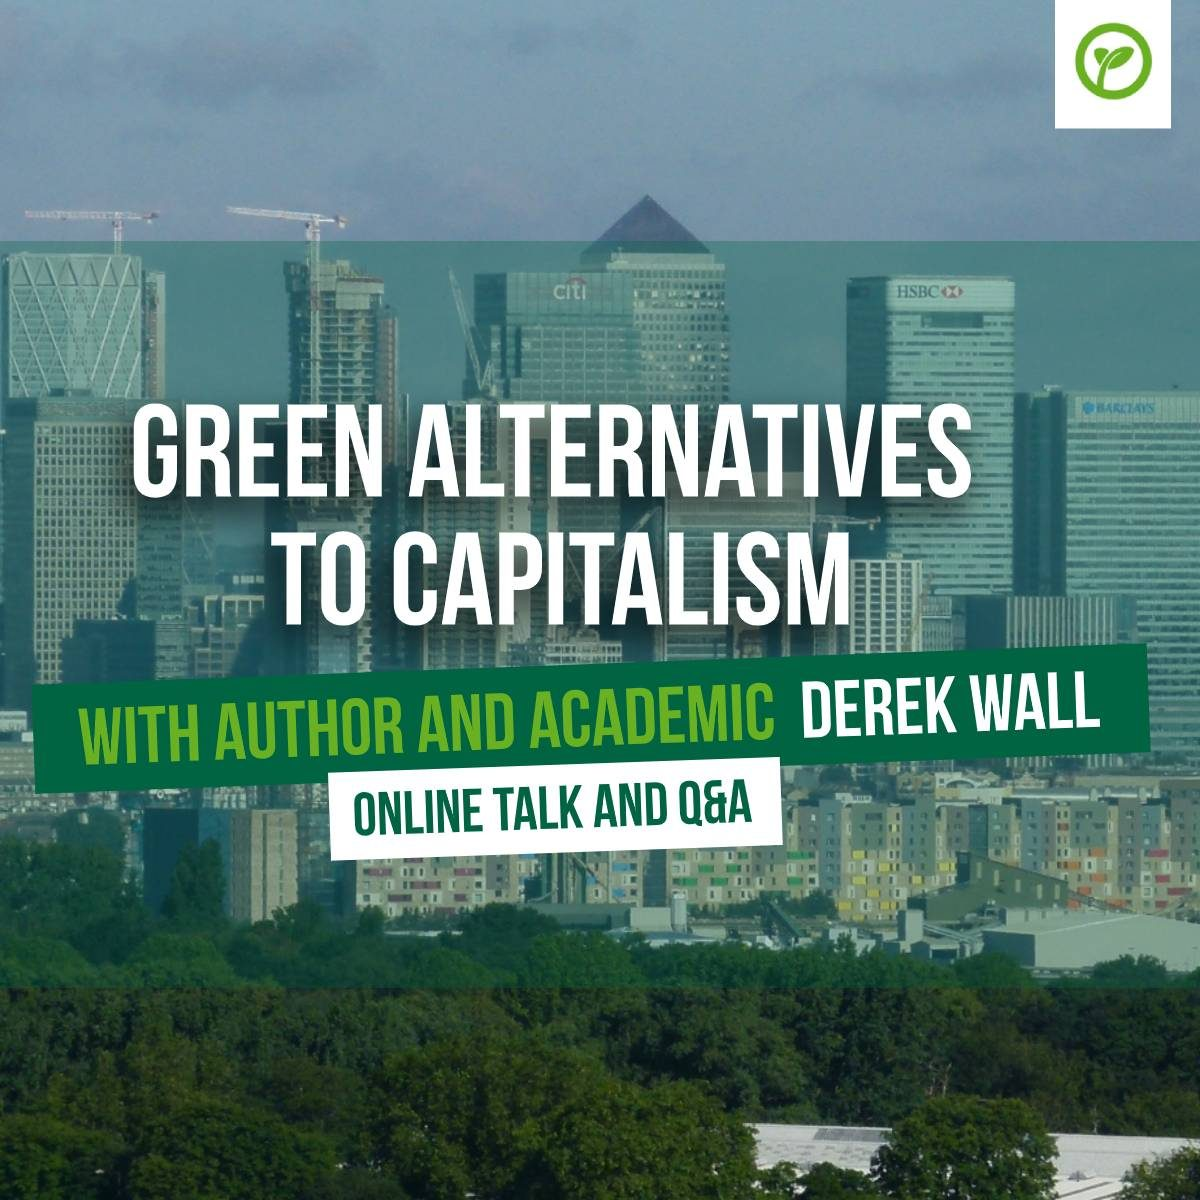 Green Alternatives to Capitalism with Author and Academic Derek Wall - Online Talk and Q&A